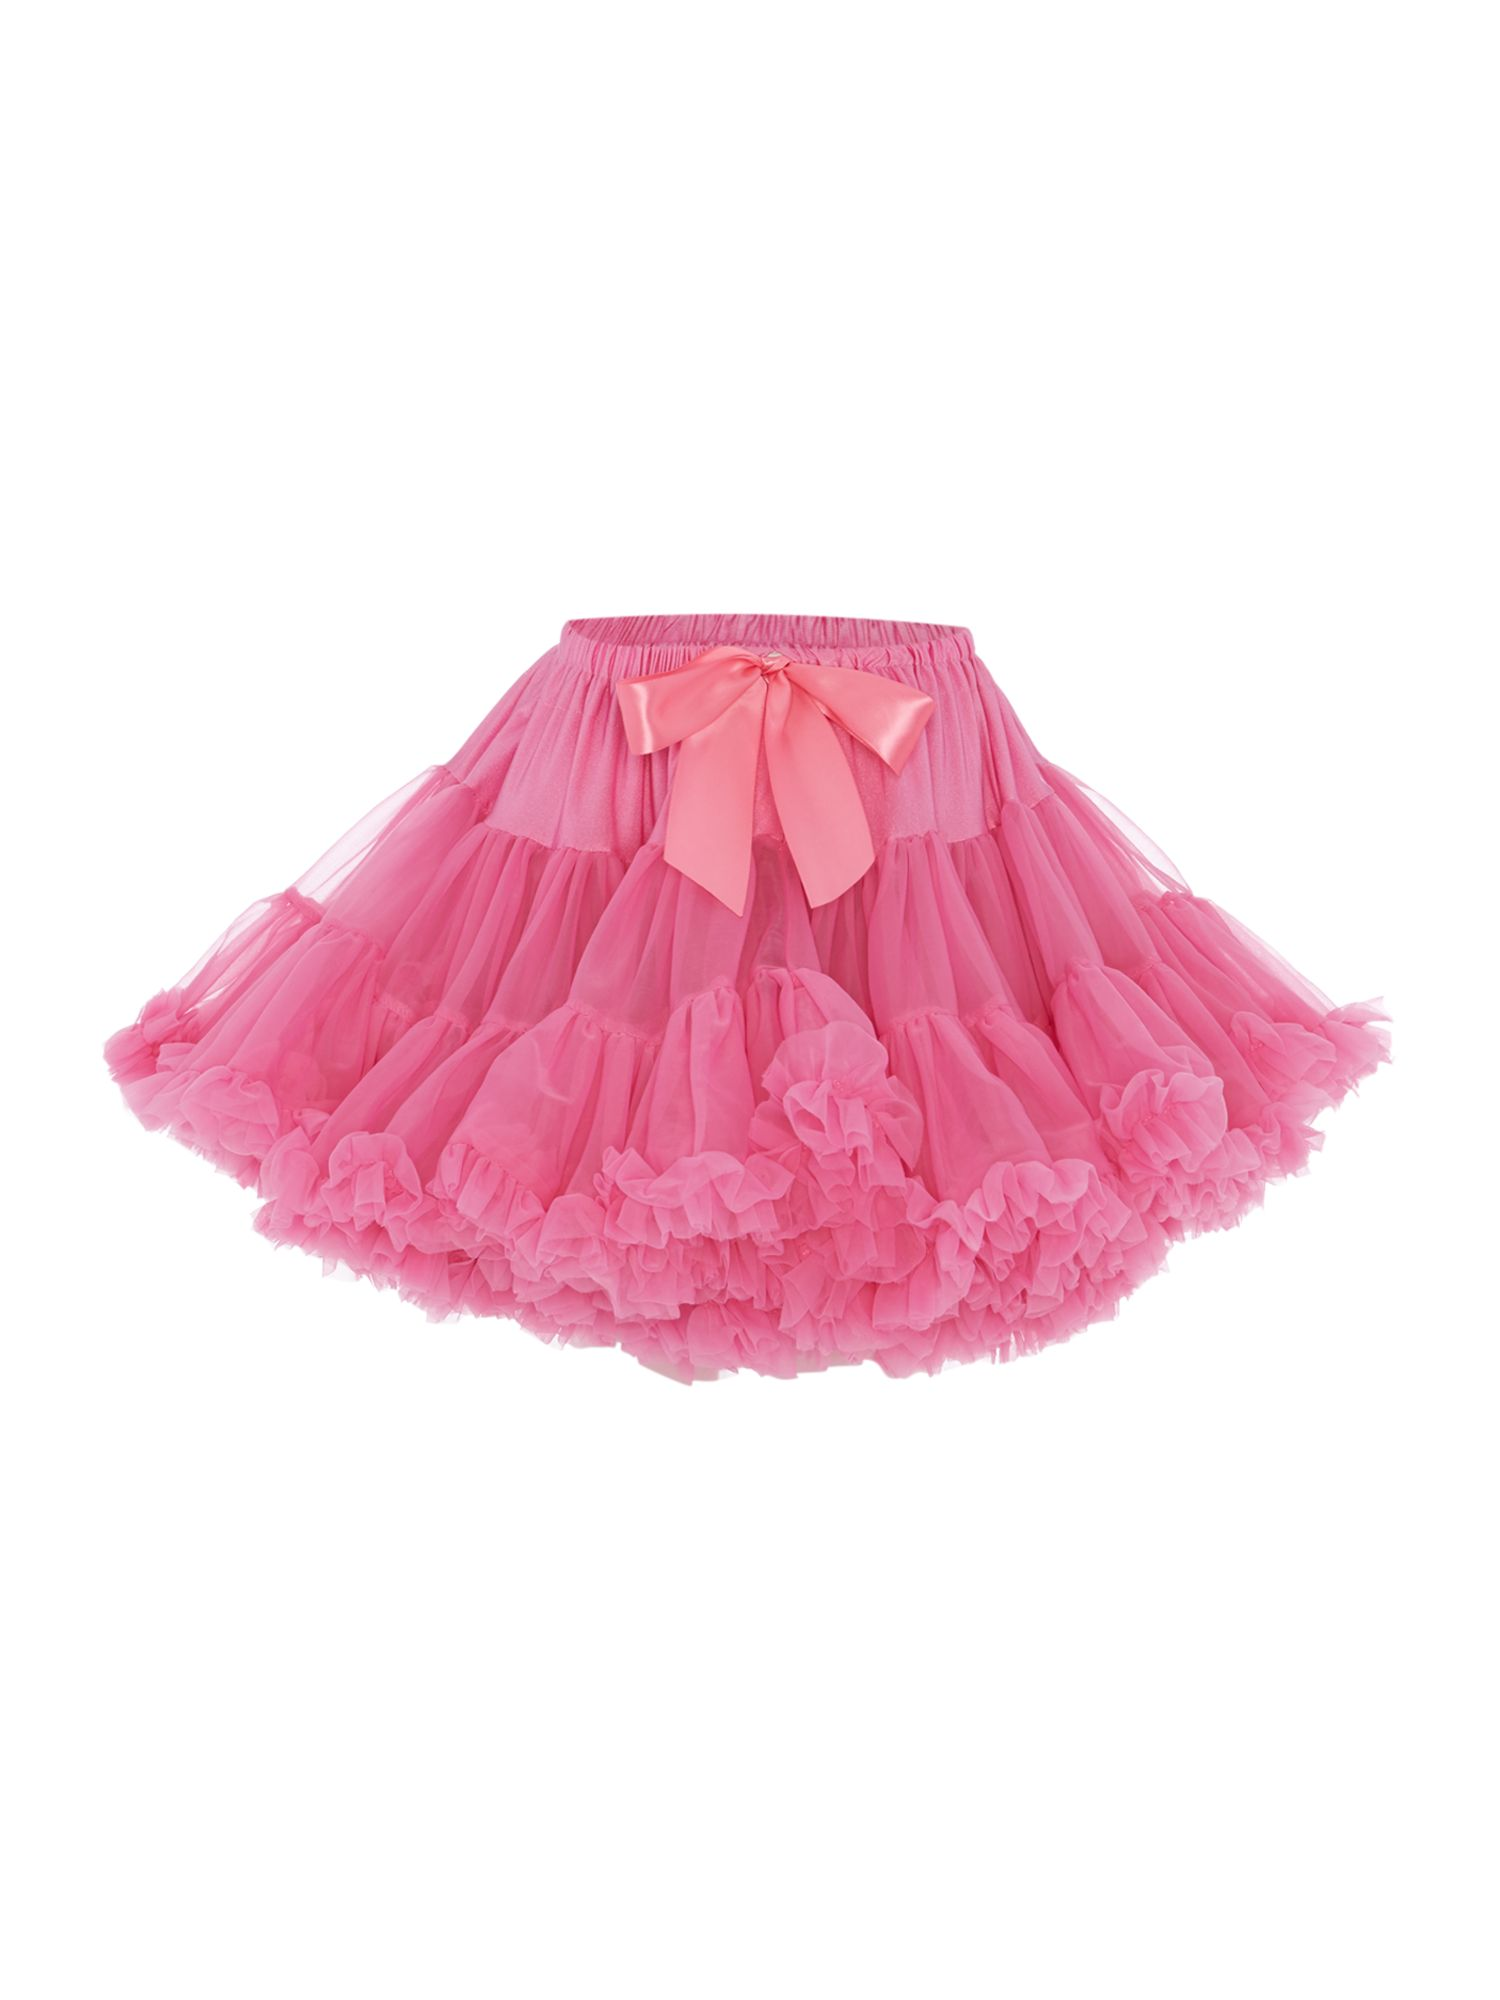 Angel's Face Angel's Face Girls Multi layered tutu skirt with big bow, Candy Pink